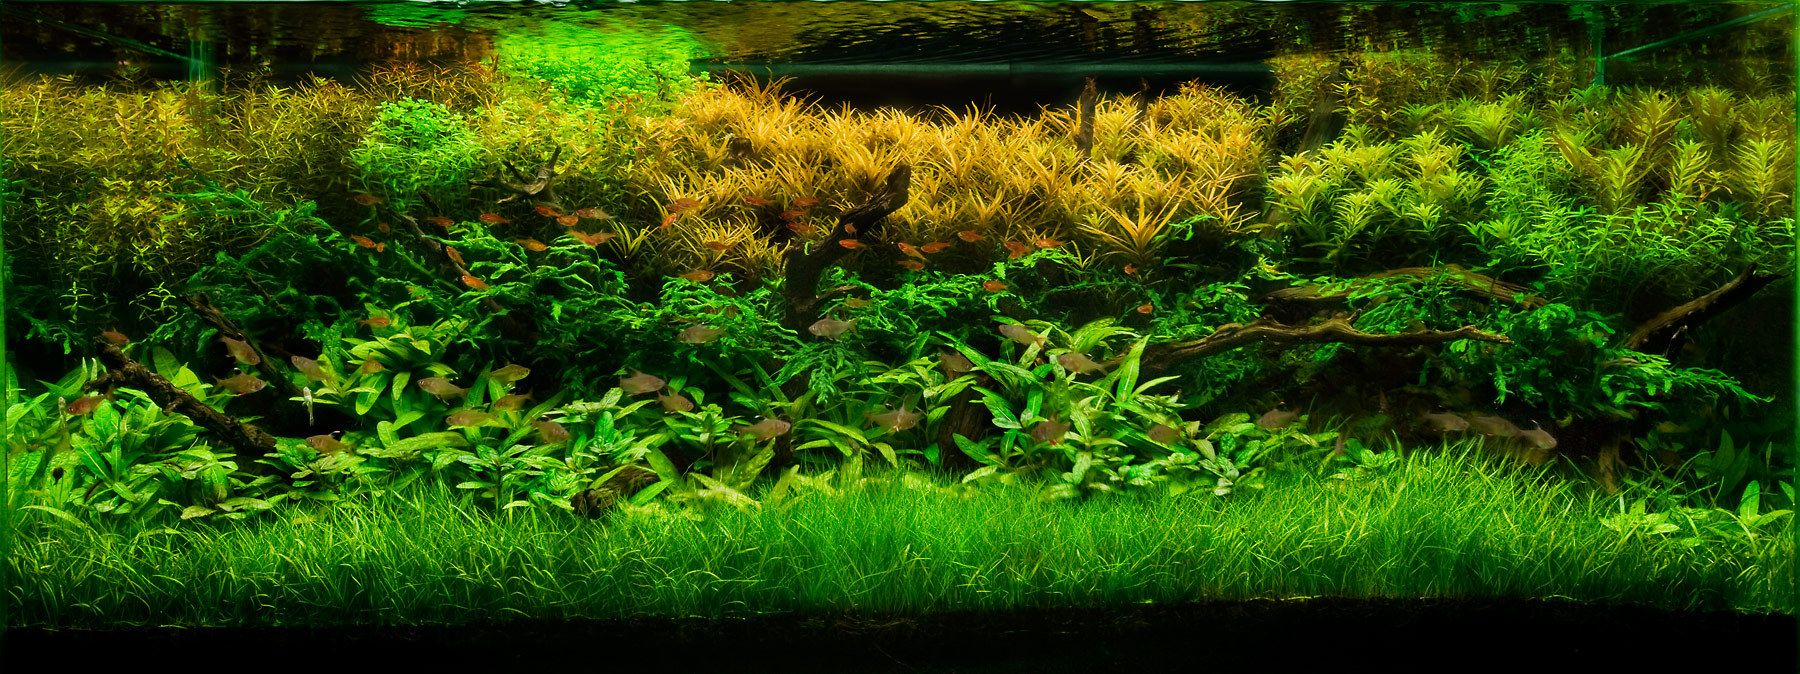 A Layout with Lush Stemmed Aquatic Plants